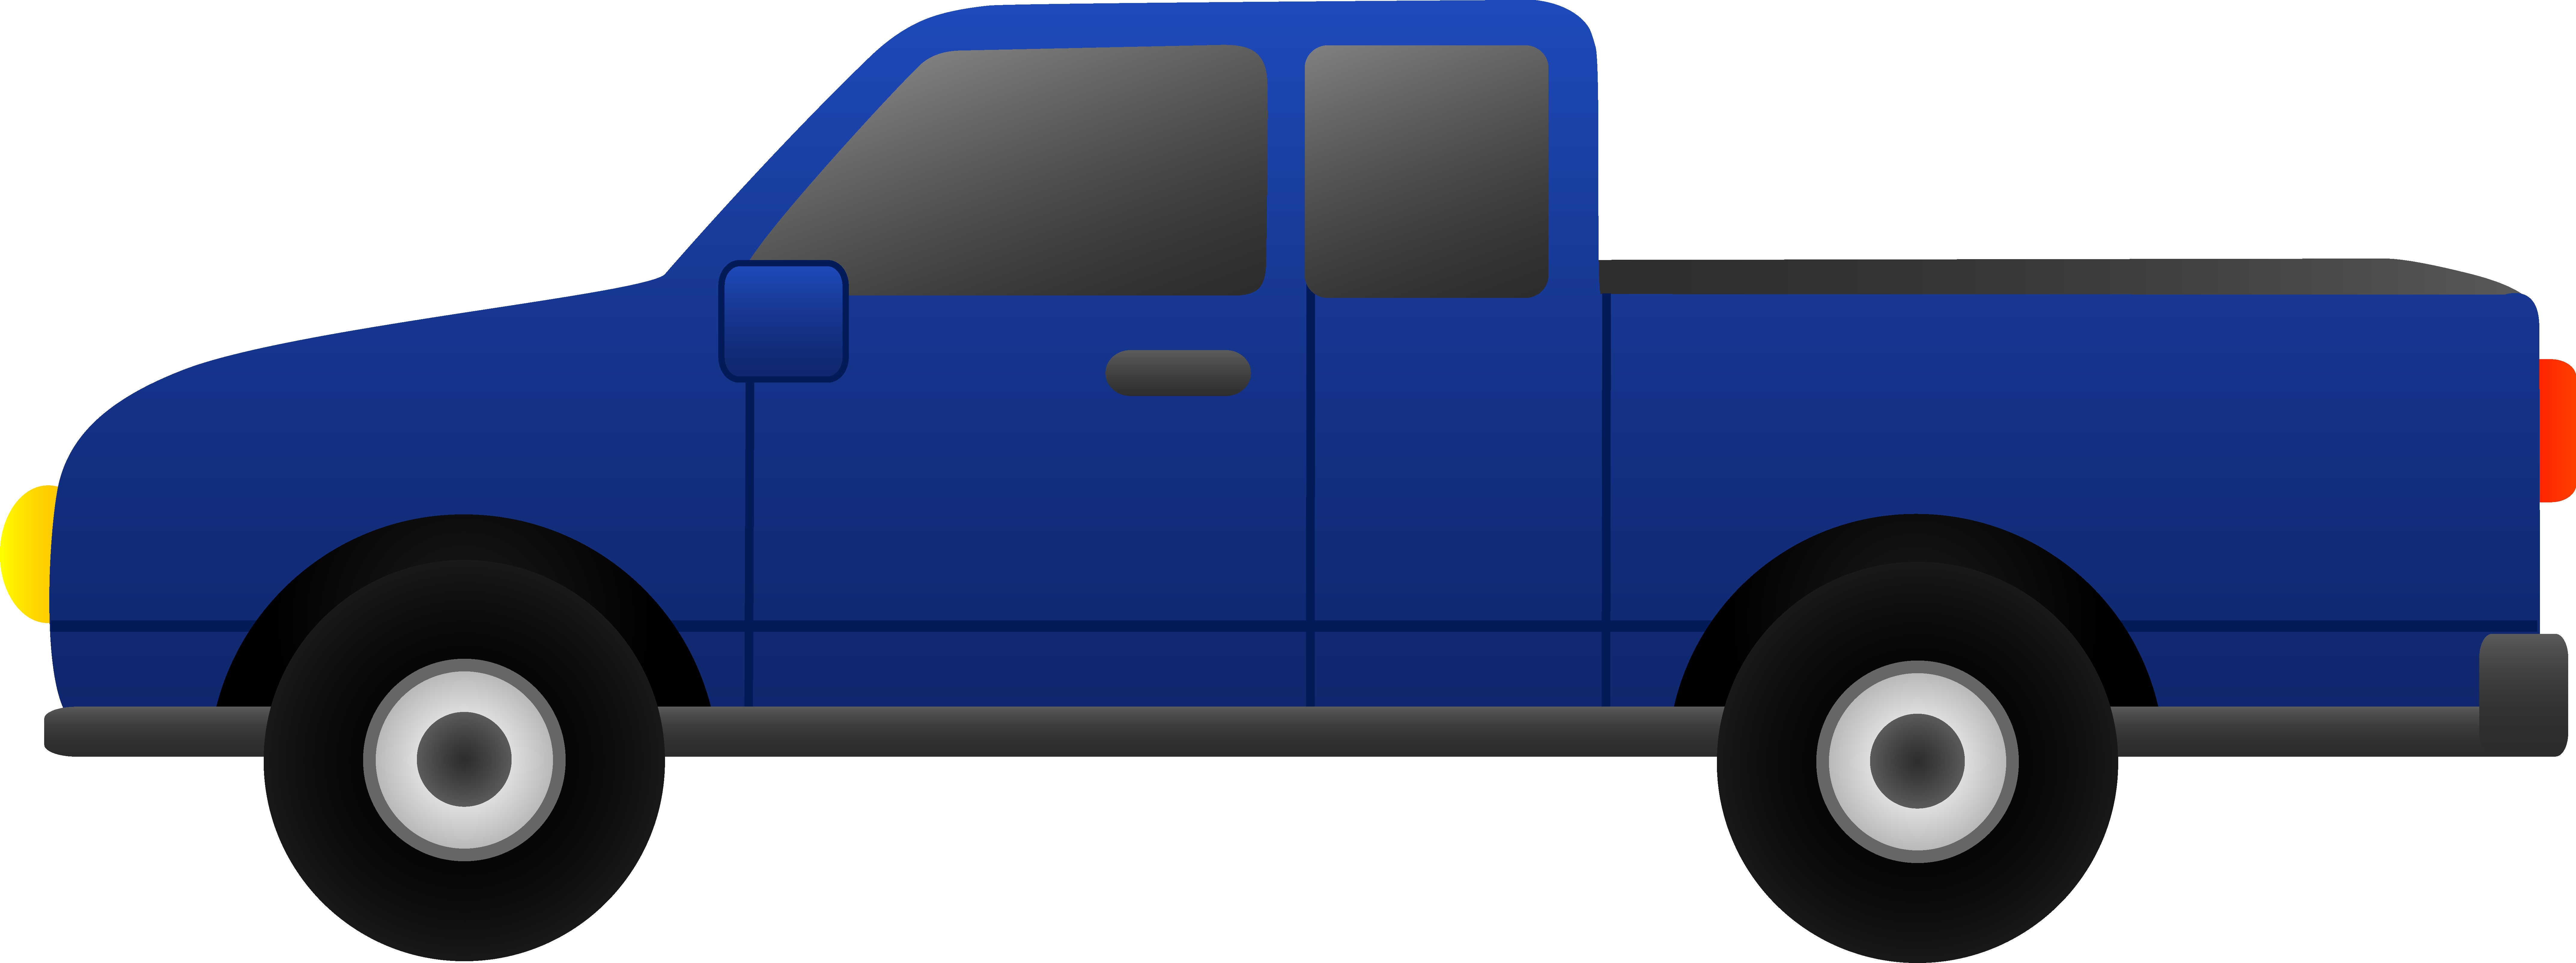 98 ford pickup truck clipart banner transparent library Free Cartoon Pickup Truck, Download Free Clip Art, Free Clip Art on ... banner transparent library